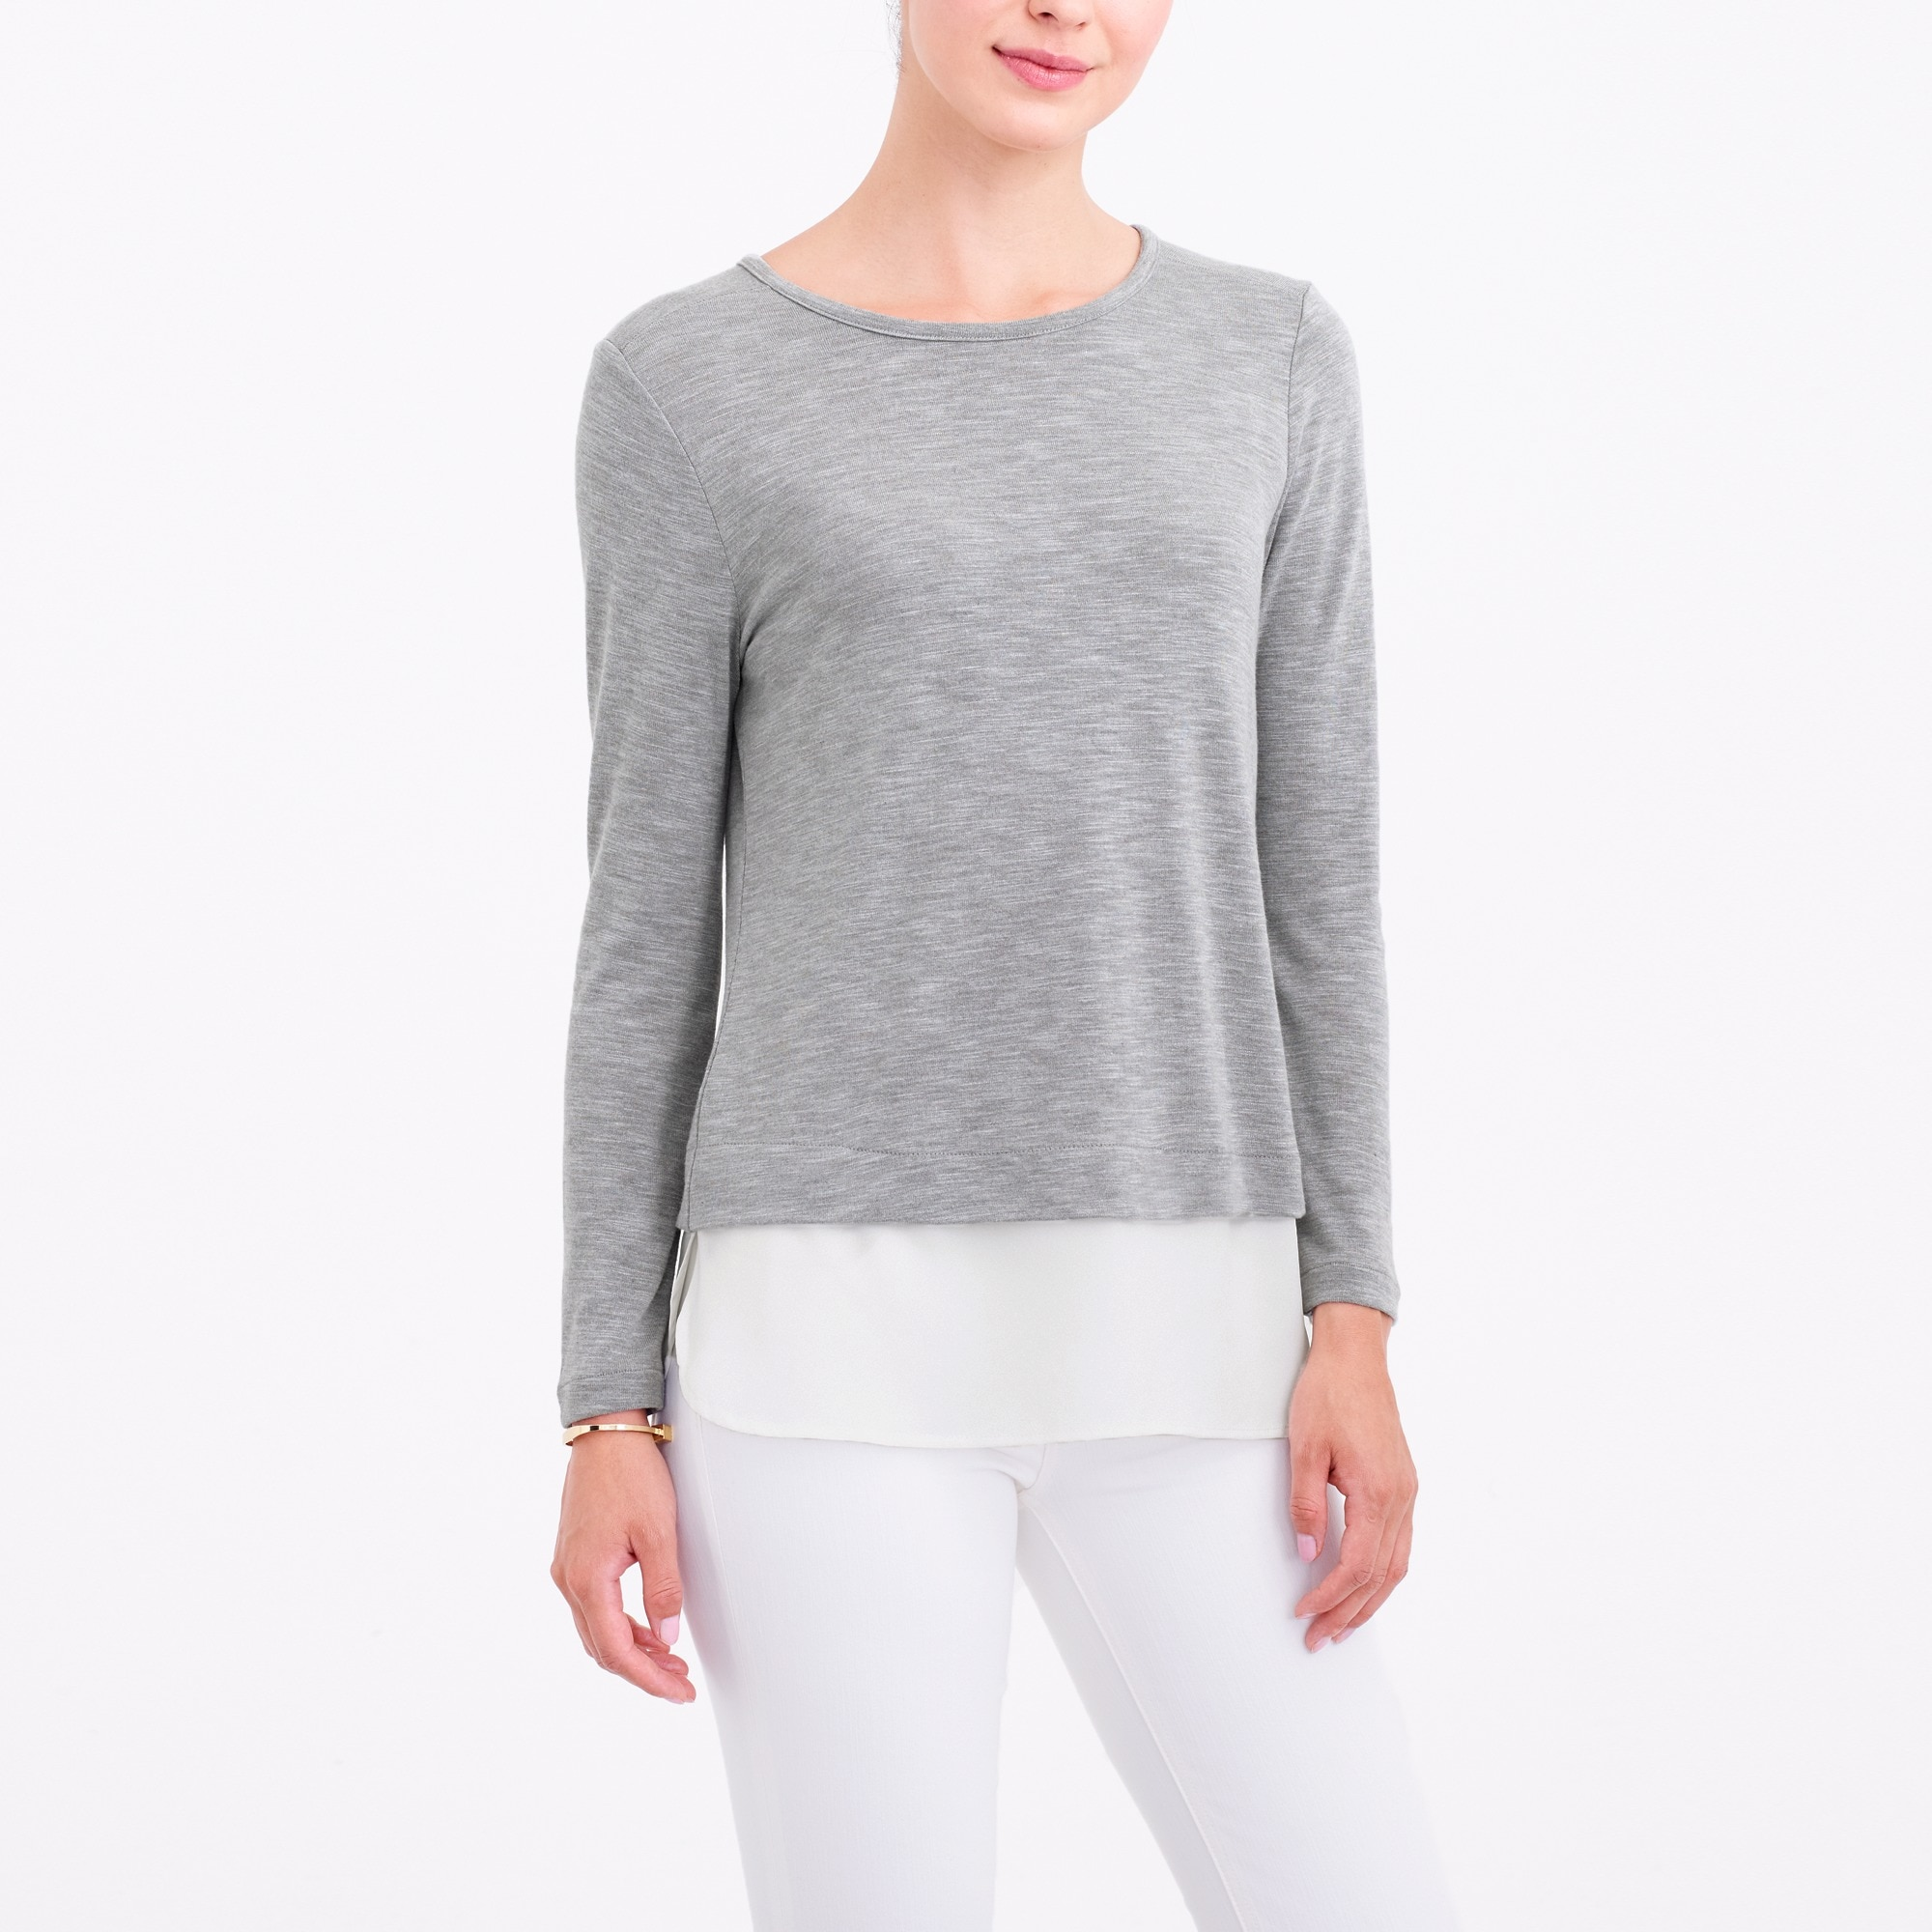 long-sleeve drapey t-shirt : women long sleeve